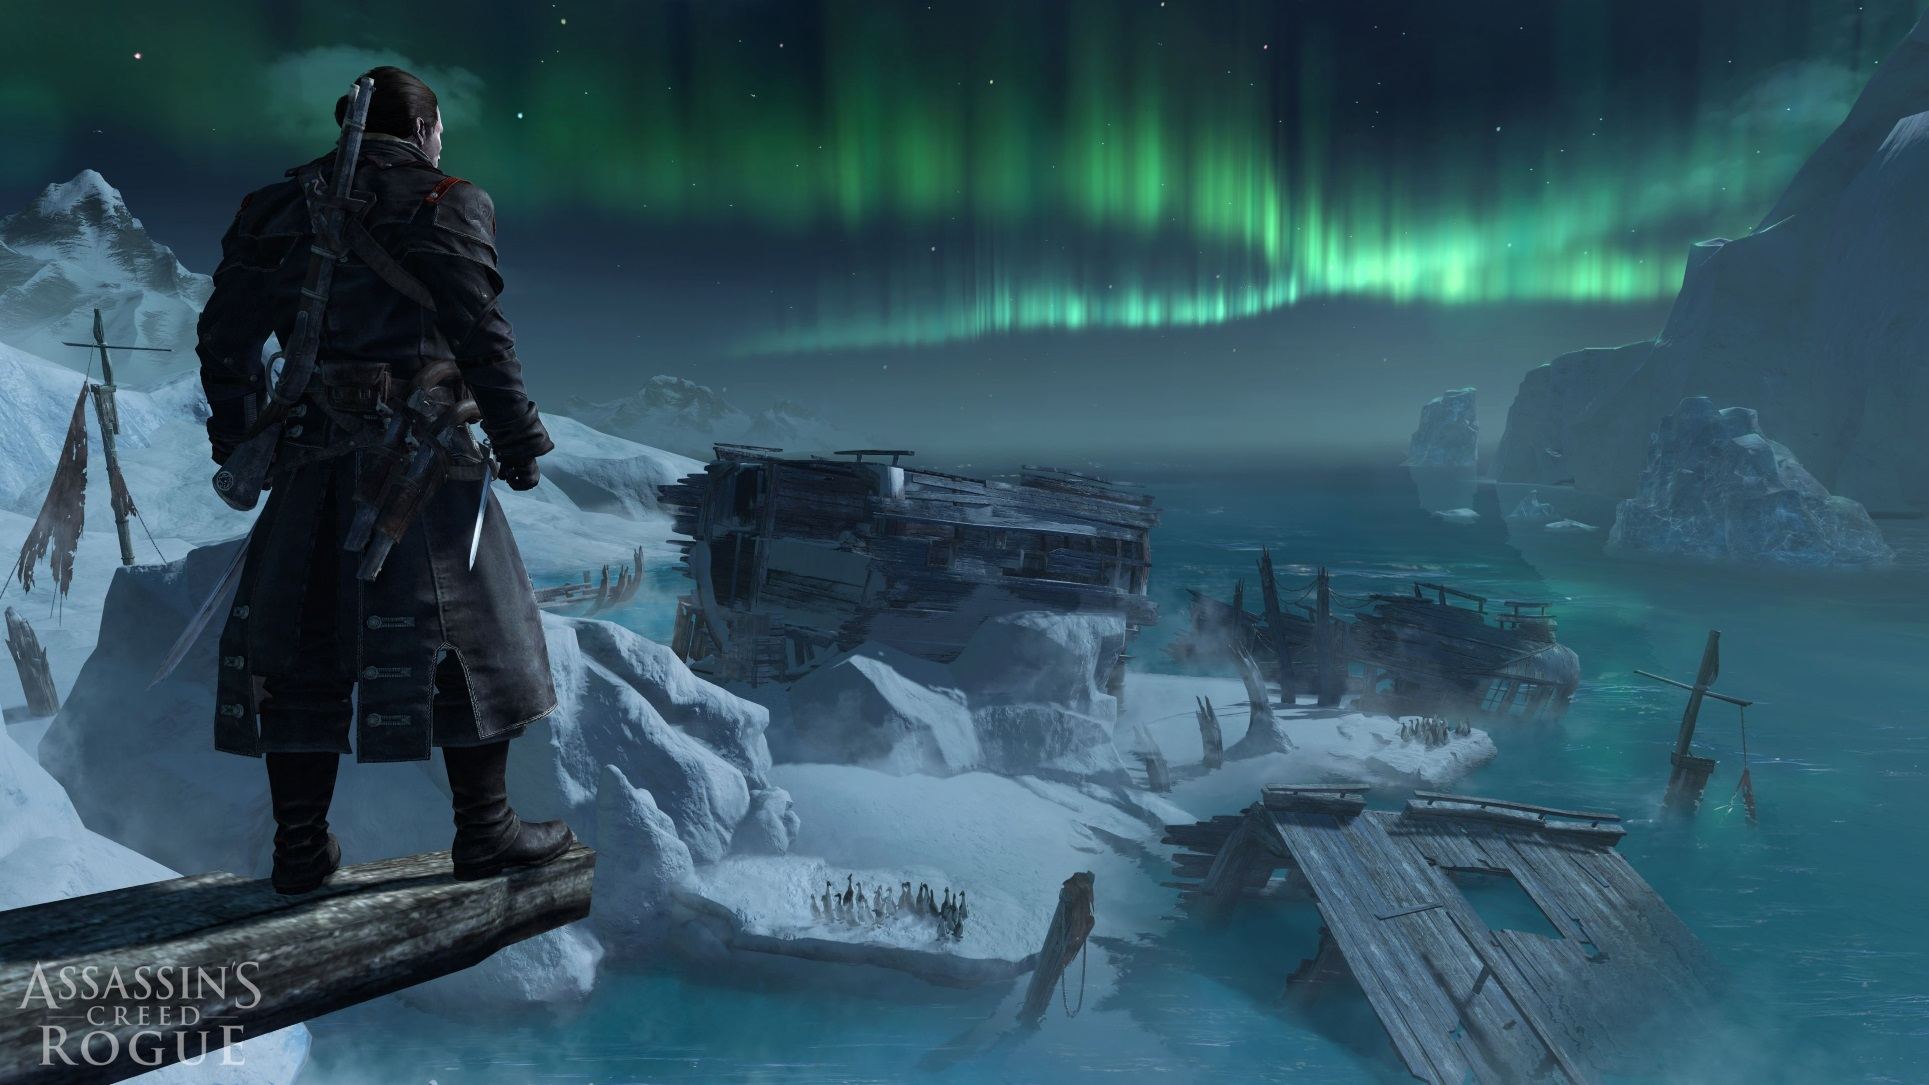 Assassin's Creed Rogue: Als Templer nach New York - Assassin's Creed Rogue (Bild: Ubisoft)